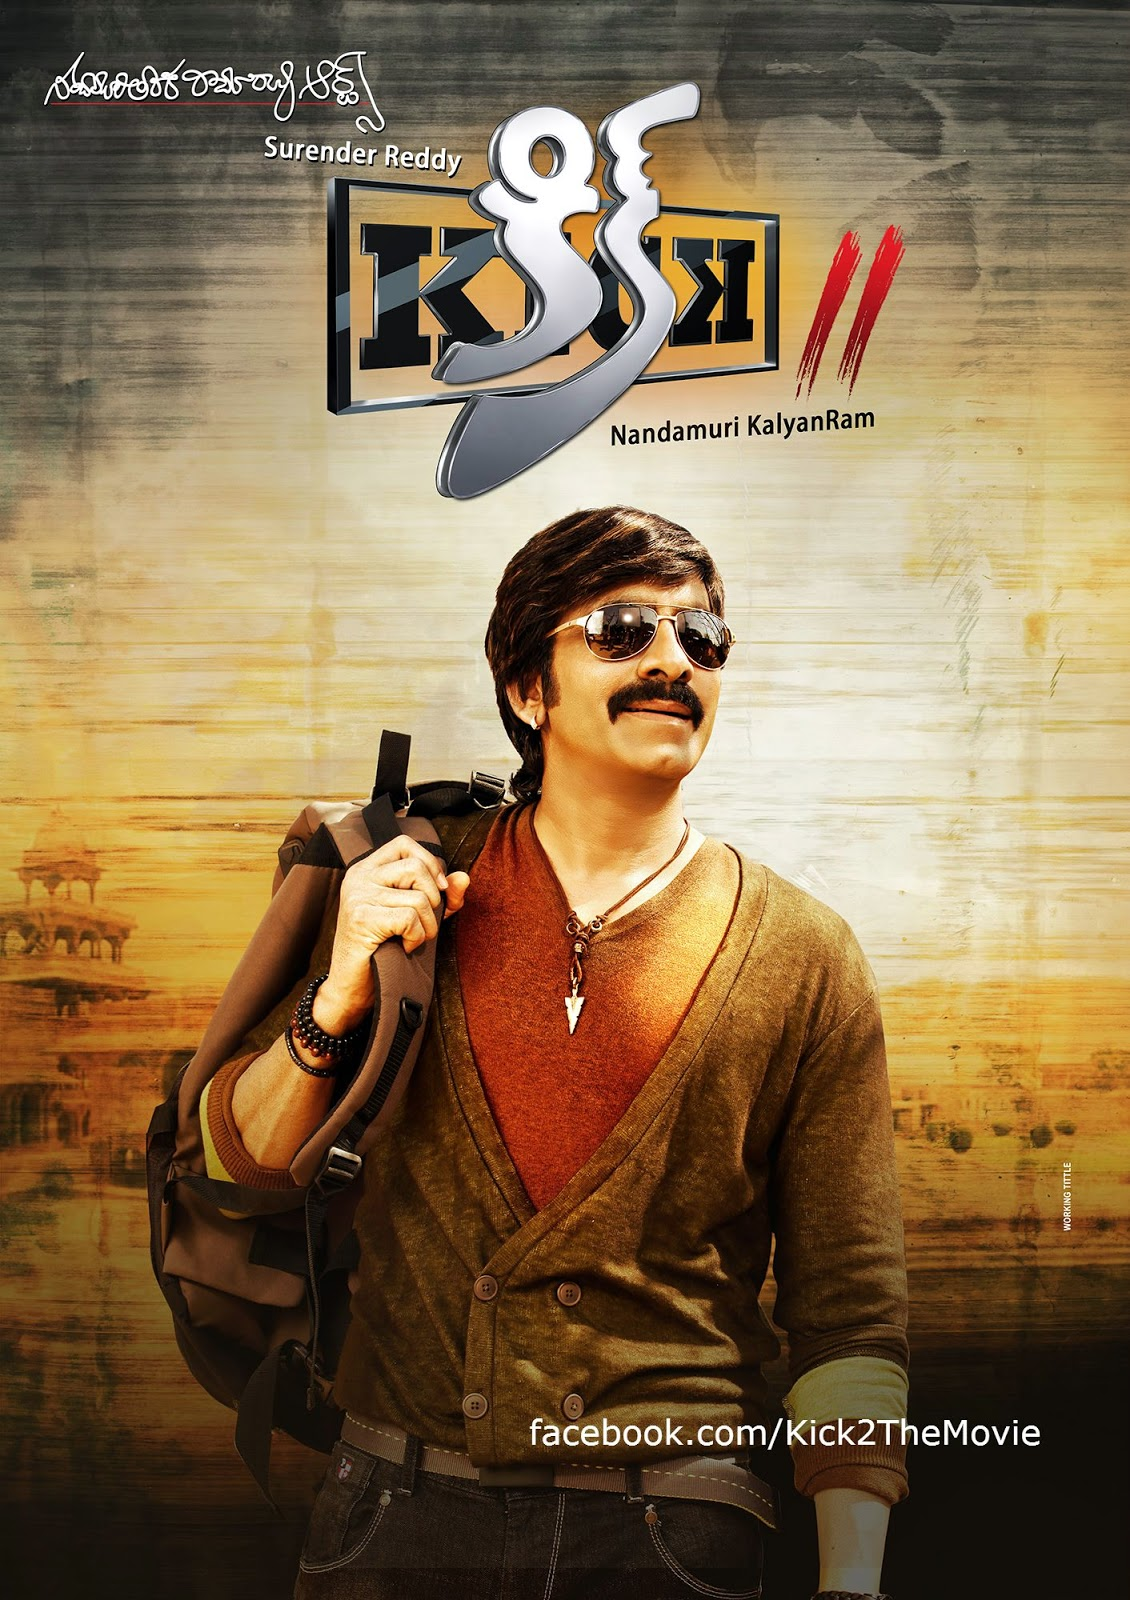 Telugu movie Kick 2 (2015) full star cast and crew wiki, Ravi Teja, Rakul Preet Singh, release date, poster, Trailer, Songs list, actress, actors name, Kick 2 first look Pics, wallpaper